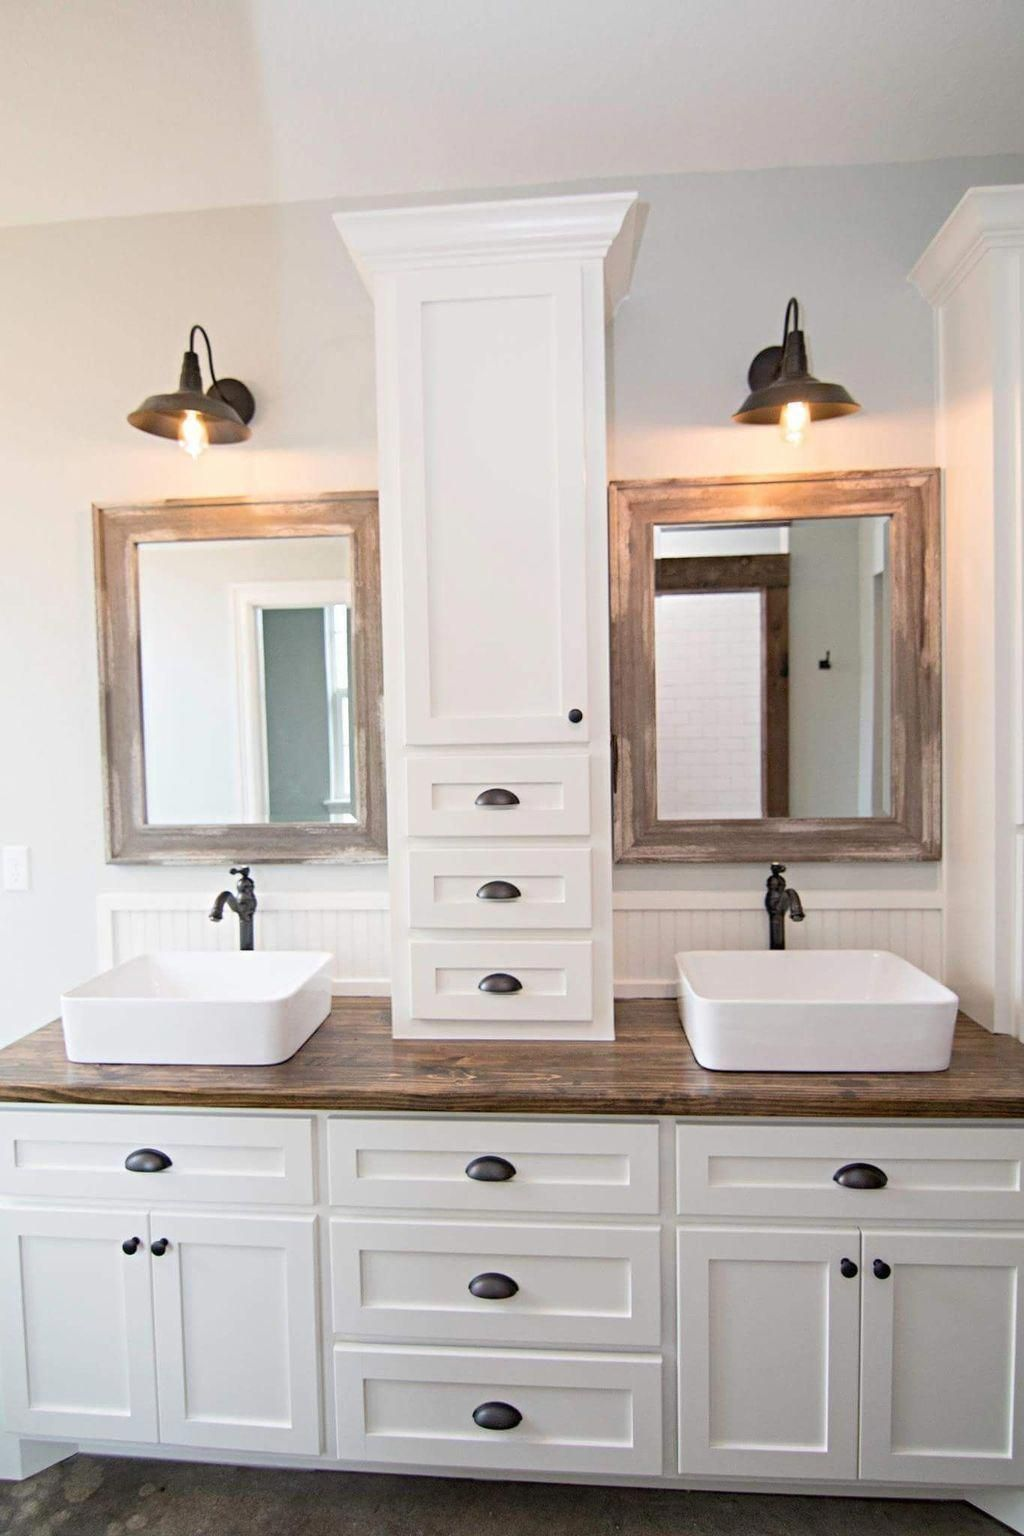 Master Bathroom Ideas Just Like Your Master Bedroom You Need To Make The Best Of Your Maste Small Bathroom Remodel Bathroom Remodel Master Bathrooms Remodel